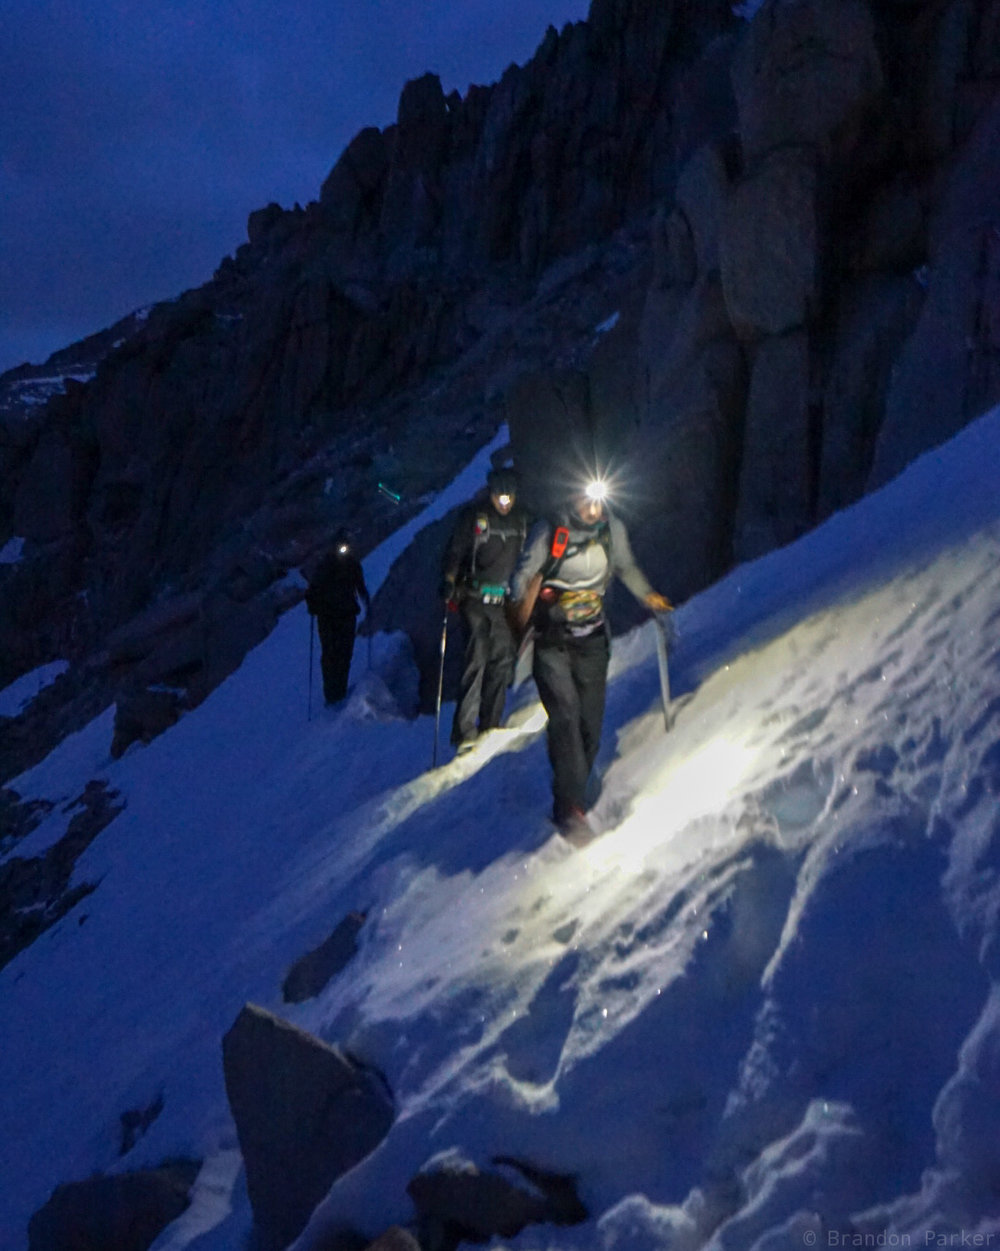 Alpine starts mean you hike in the dark. ACB leading a group across the snow chute.